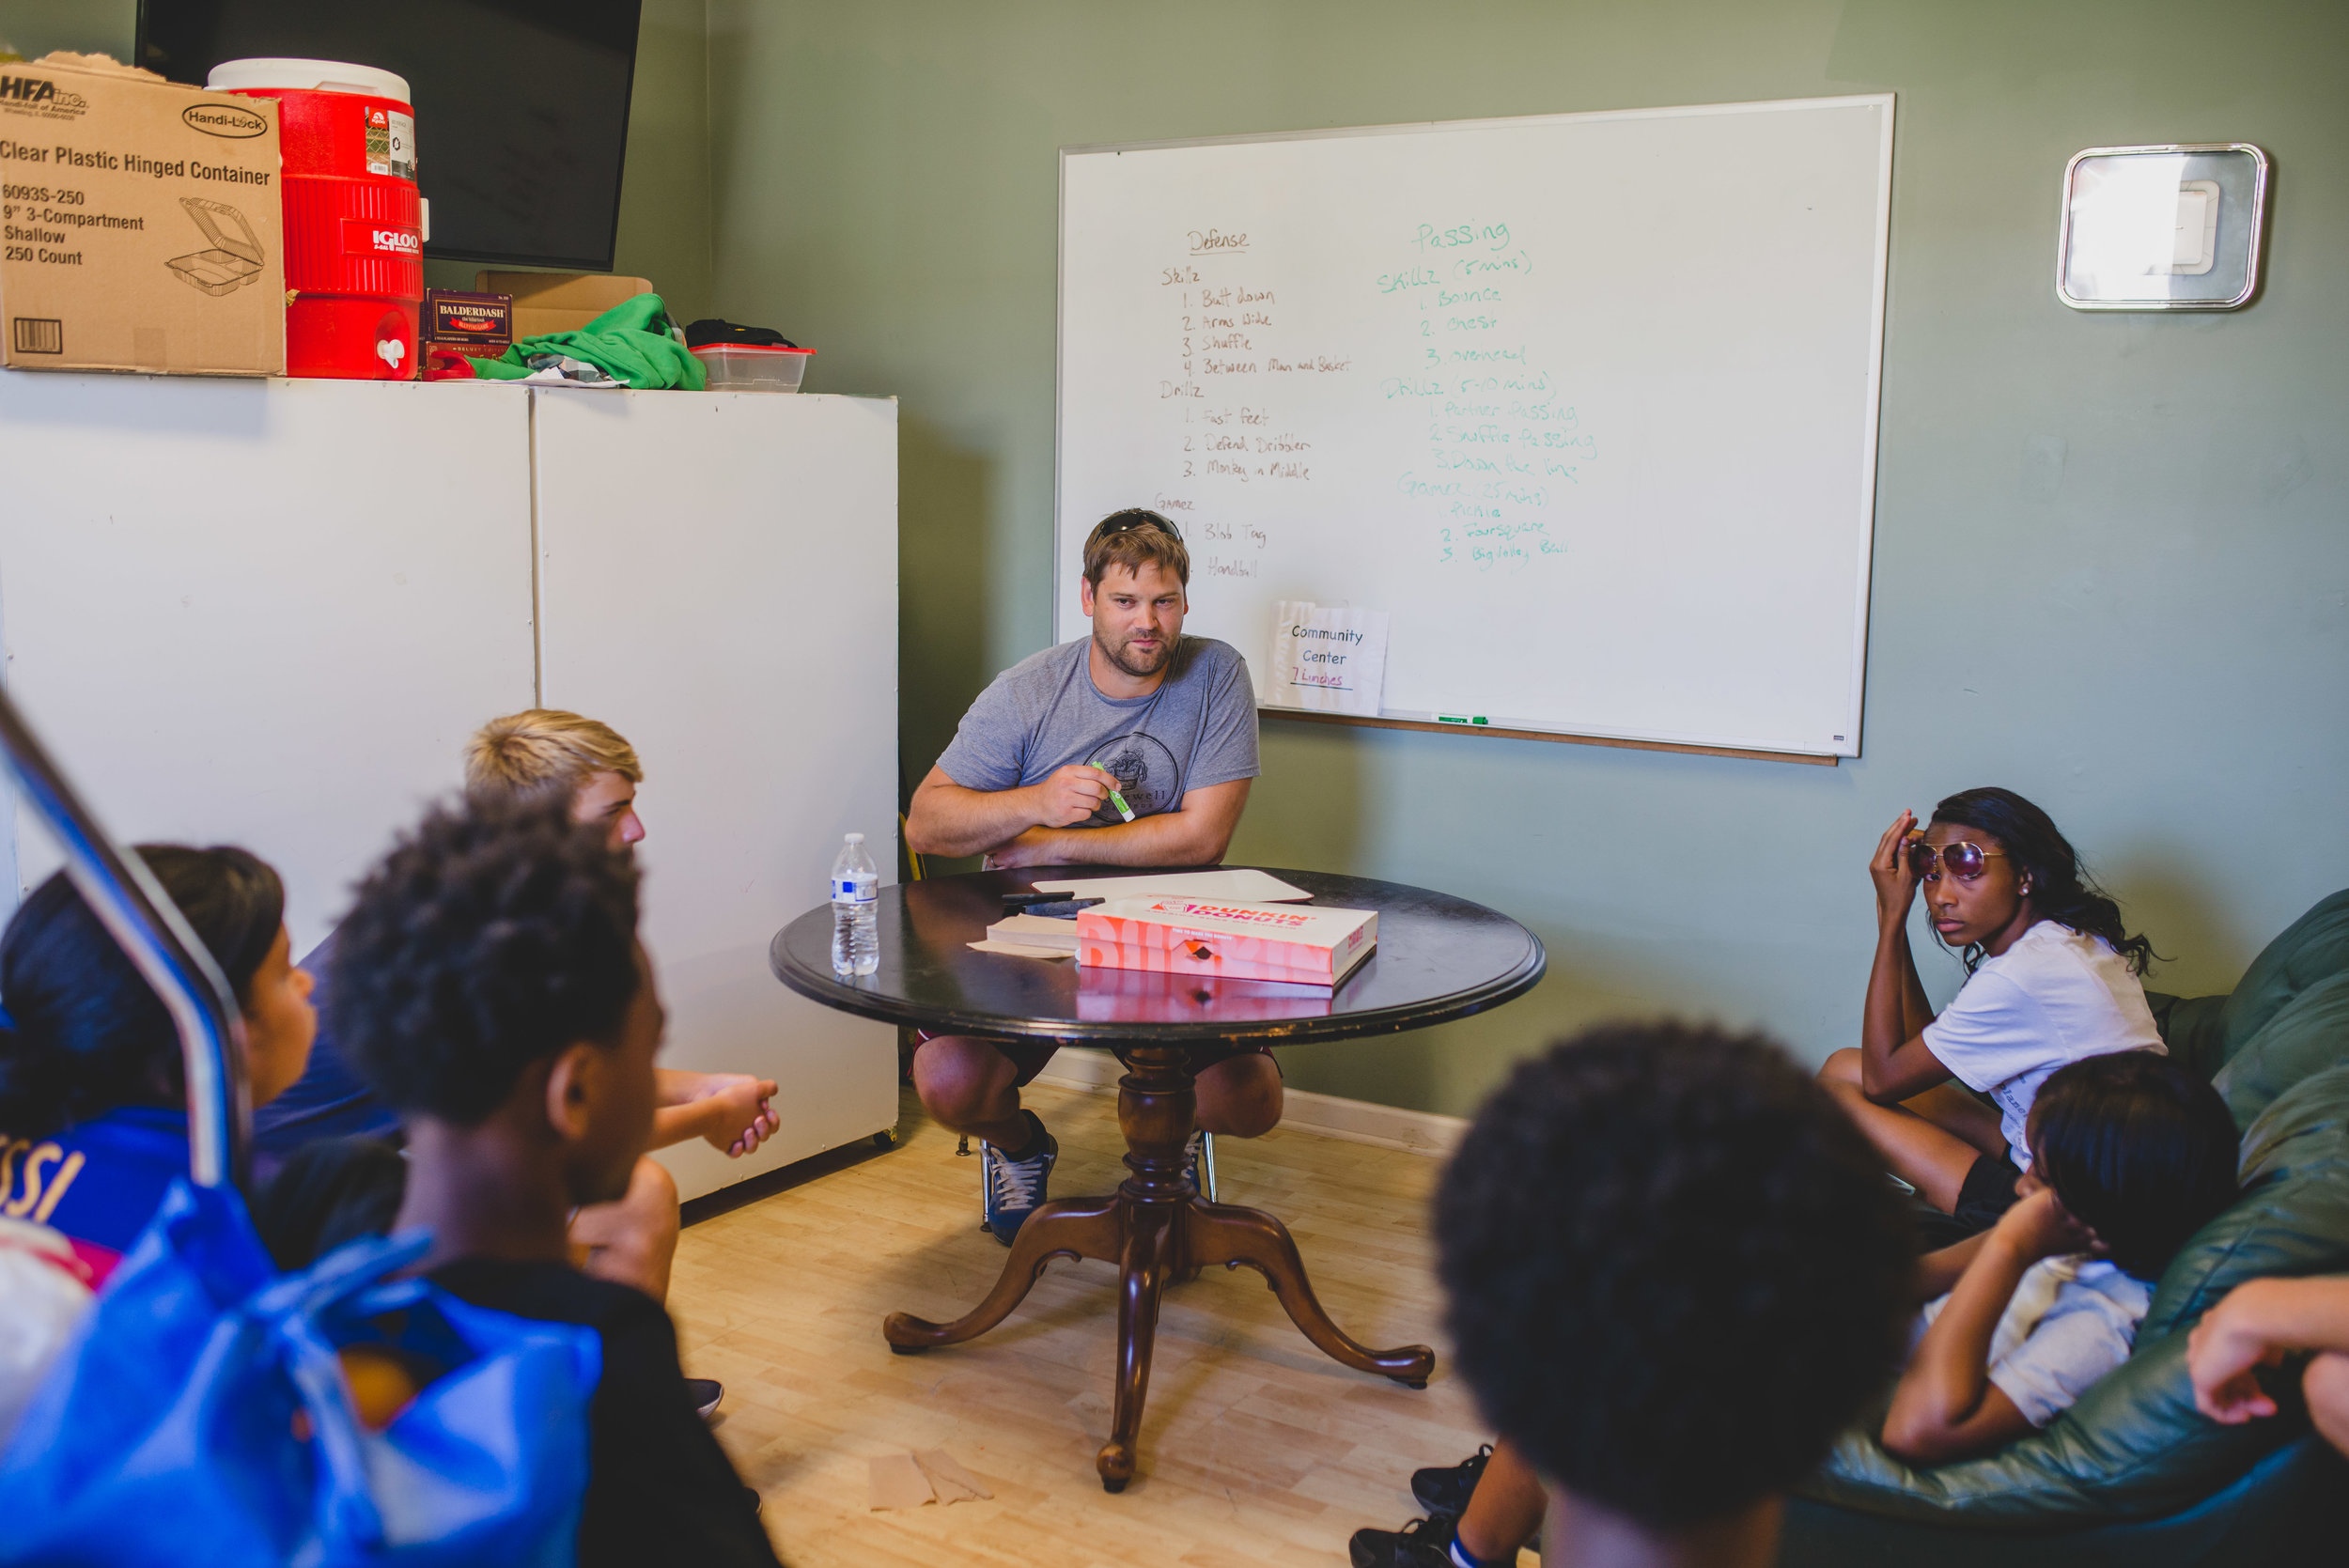 Joel Olson is well seasoned at working with kids. As a father of 3, teacher at the Academy, and volunteer coach, Joel is a wonderful asset in teaching others how to work with kids.